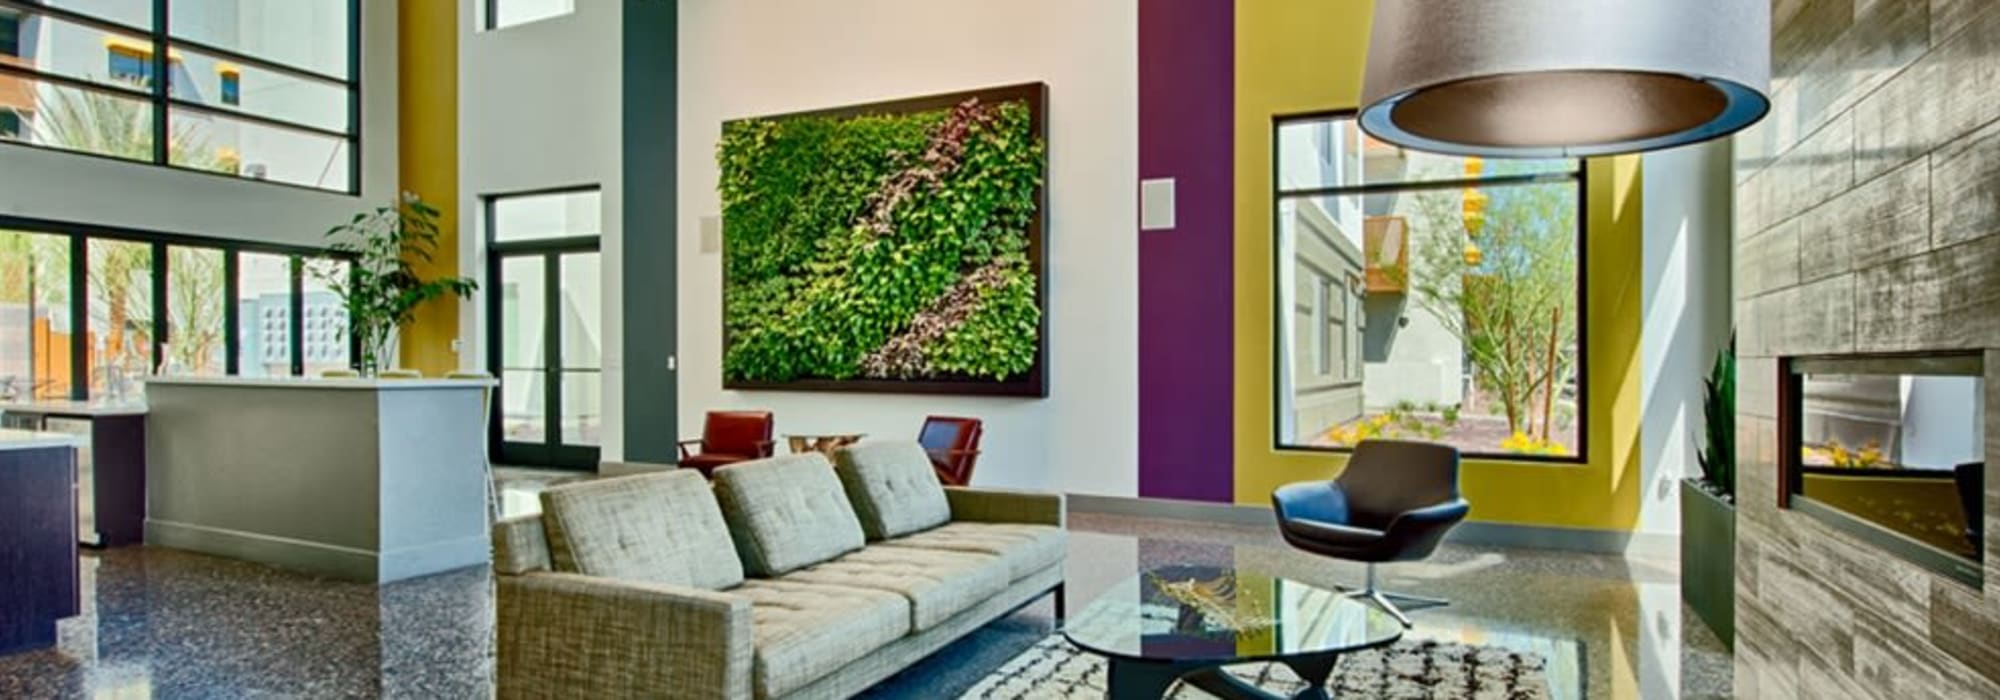 Indoor lounge and community area at Cactus Forty-2 in Phoenix, Arizona